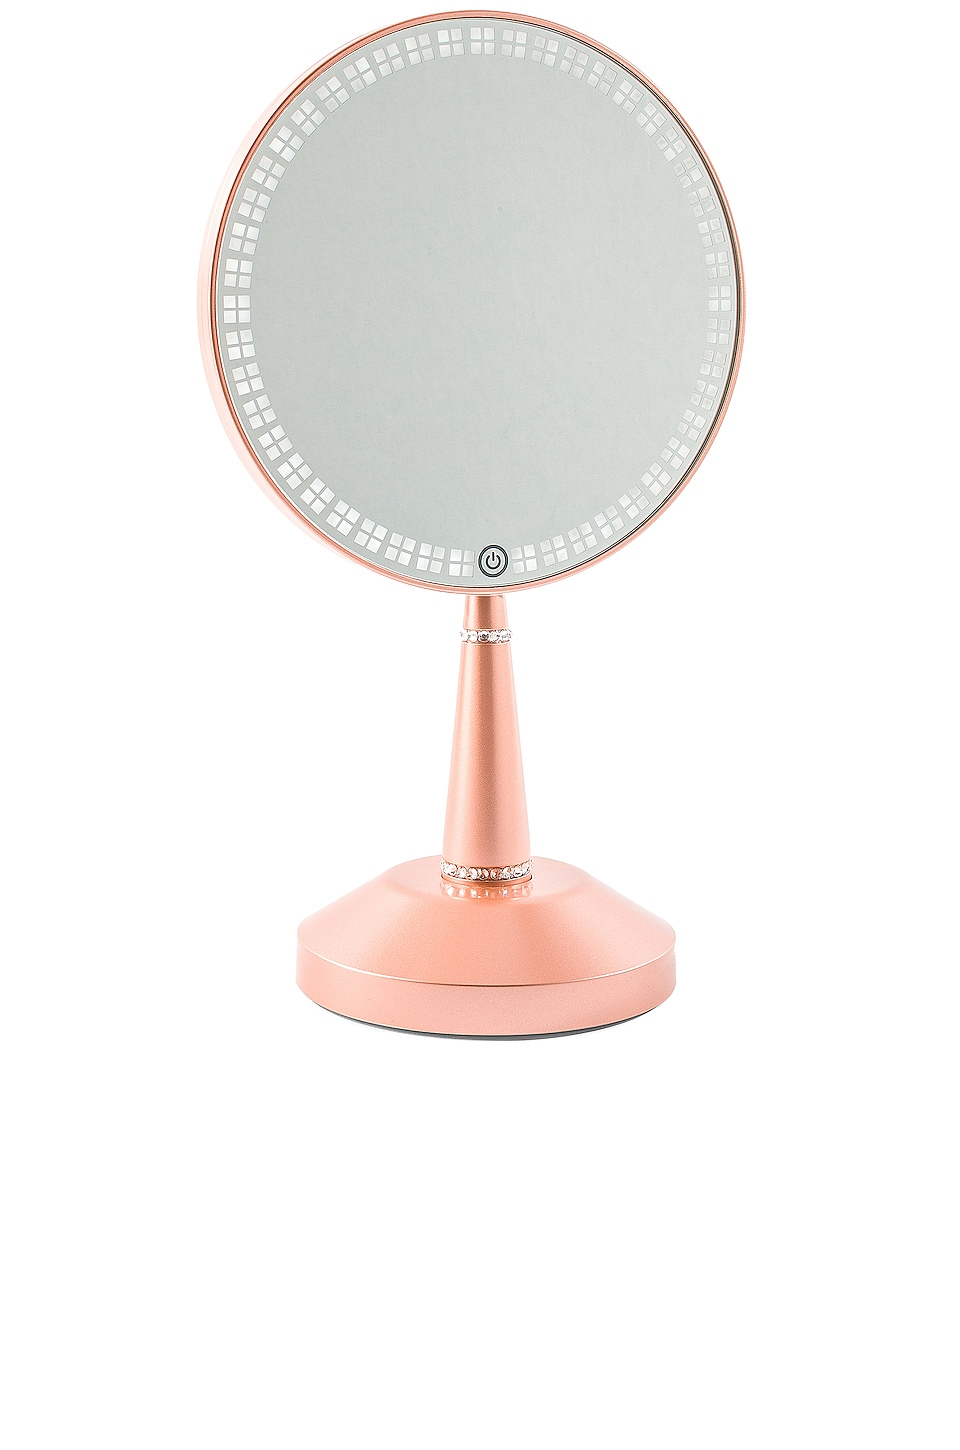 IMPRESSIONS VANITY Bijou Led Hand Mirror With Charging Stand in Metallic Copper